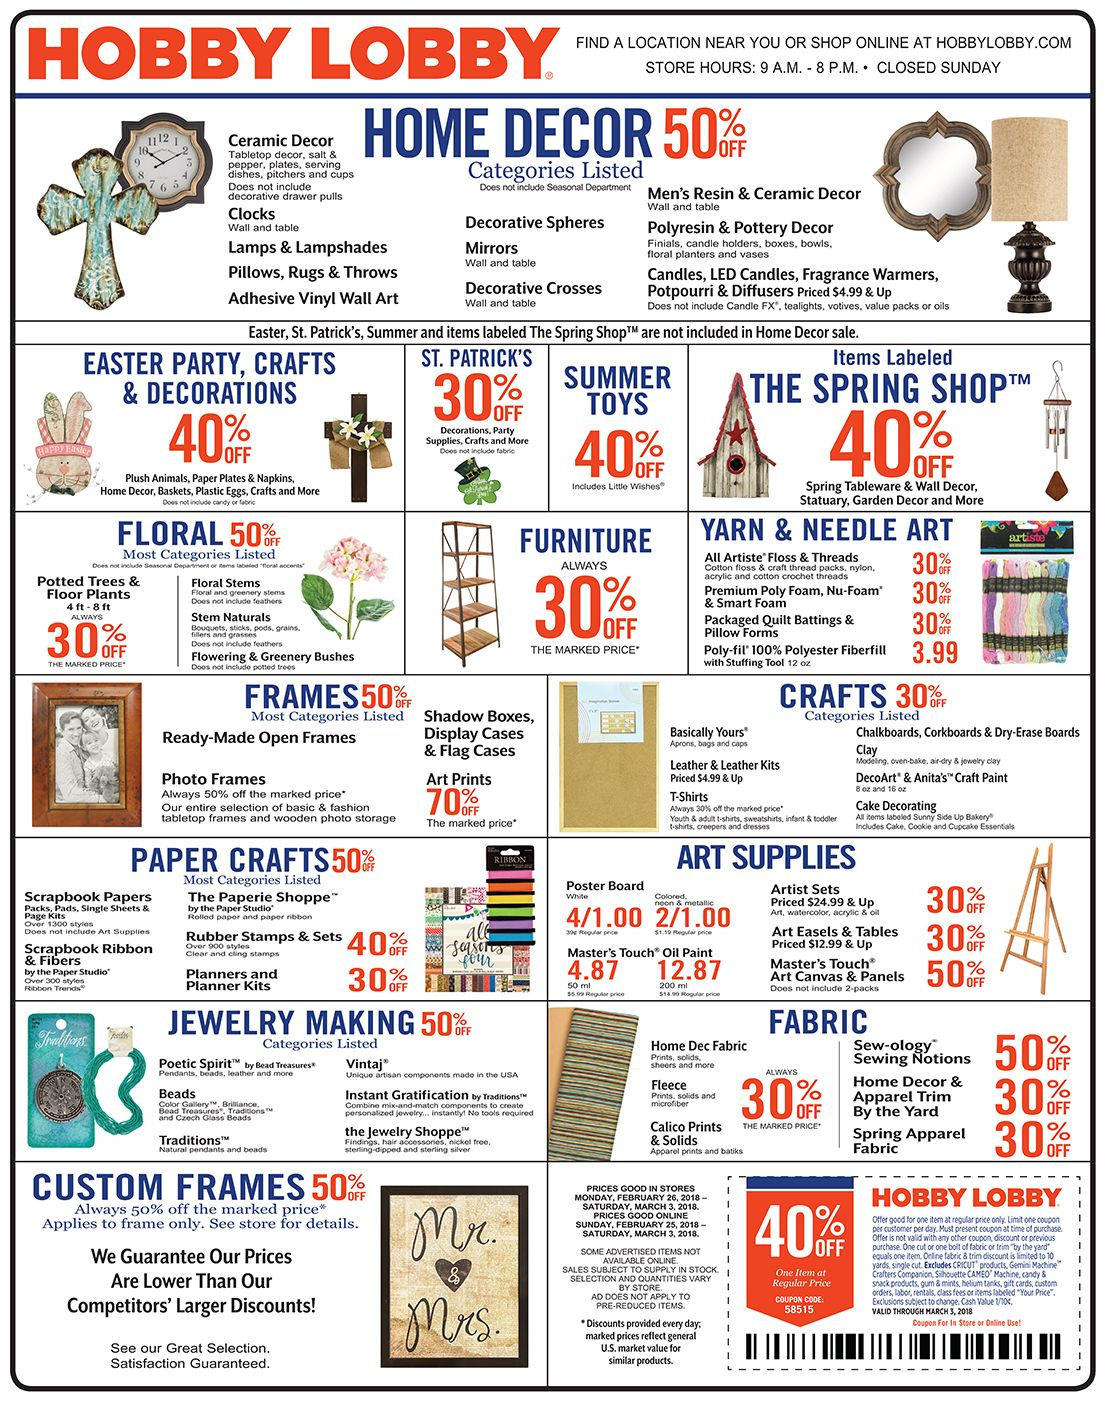 Hobby Lobby Weekly Ad Prices Good Through March 3rd 2018